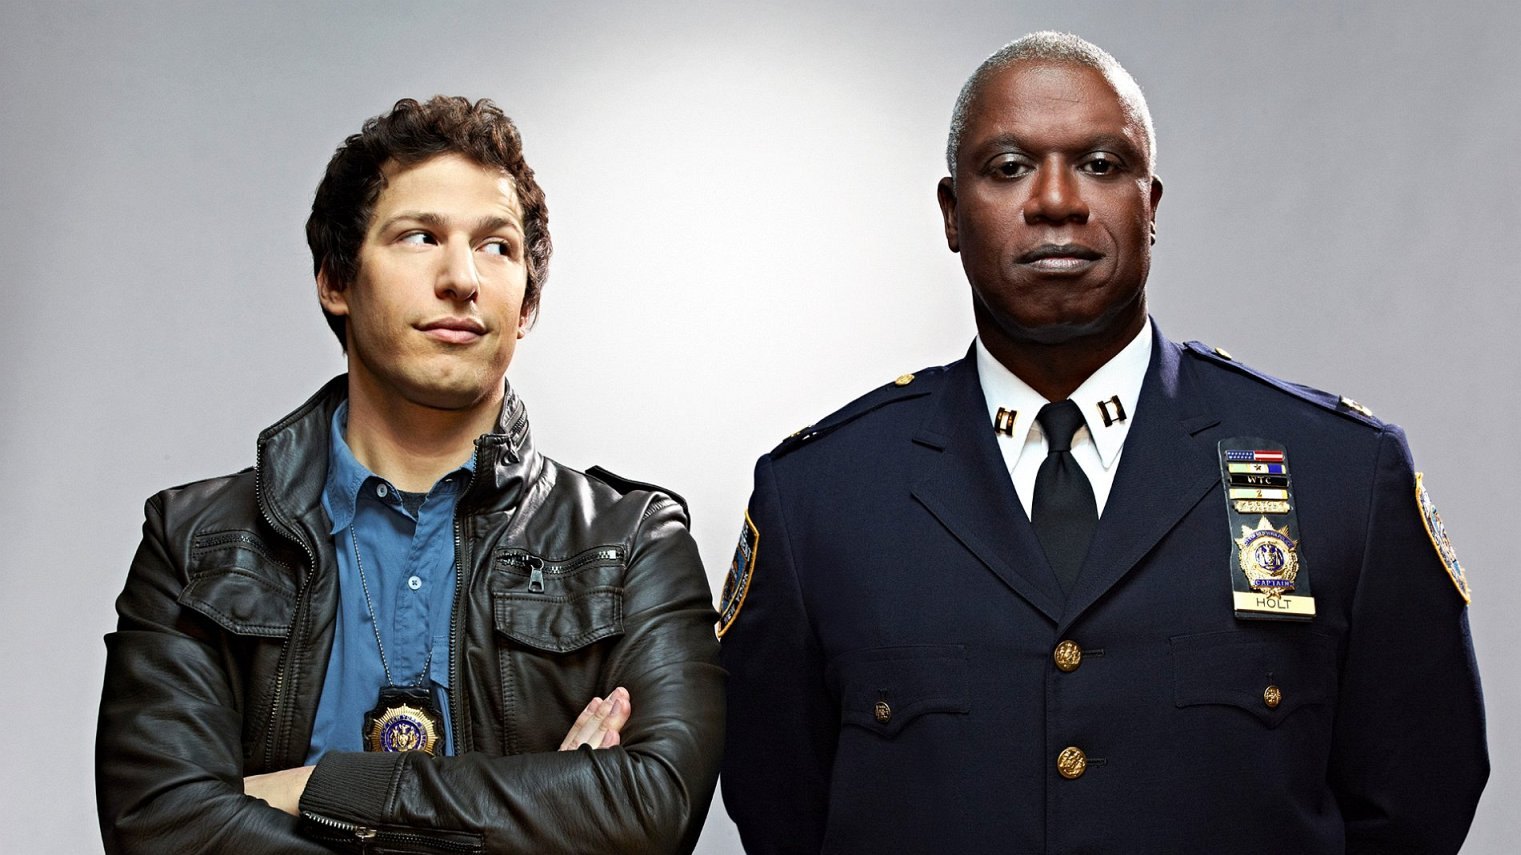 Brooklyn Nine-Nine S6 episode 5 watch online